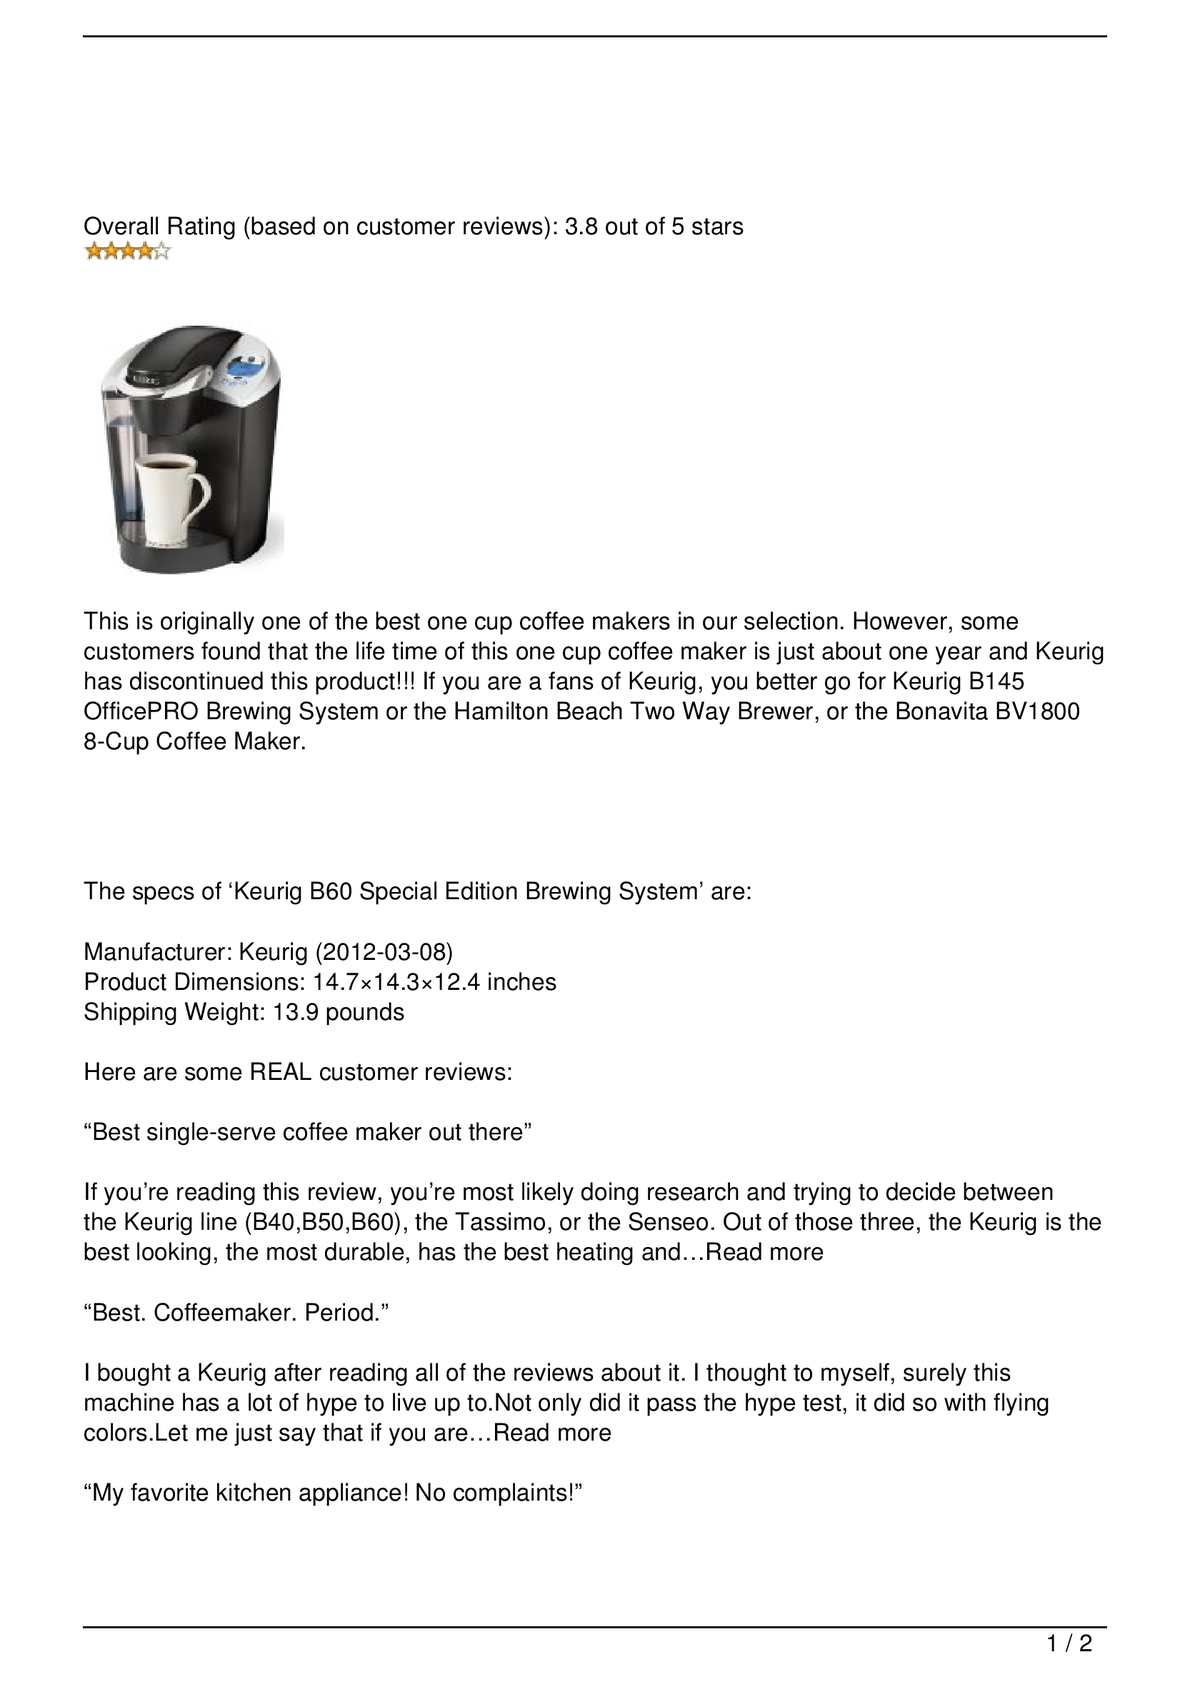 Calaméo - Fourth Runner Up: Keurig B60 Special Edition